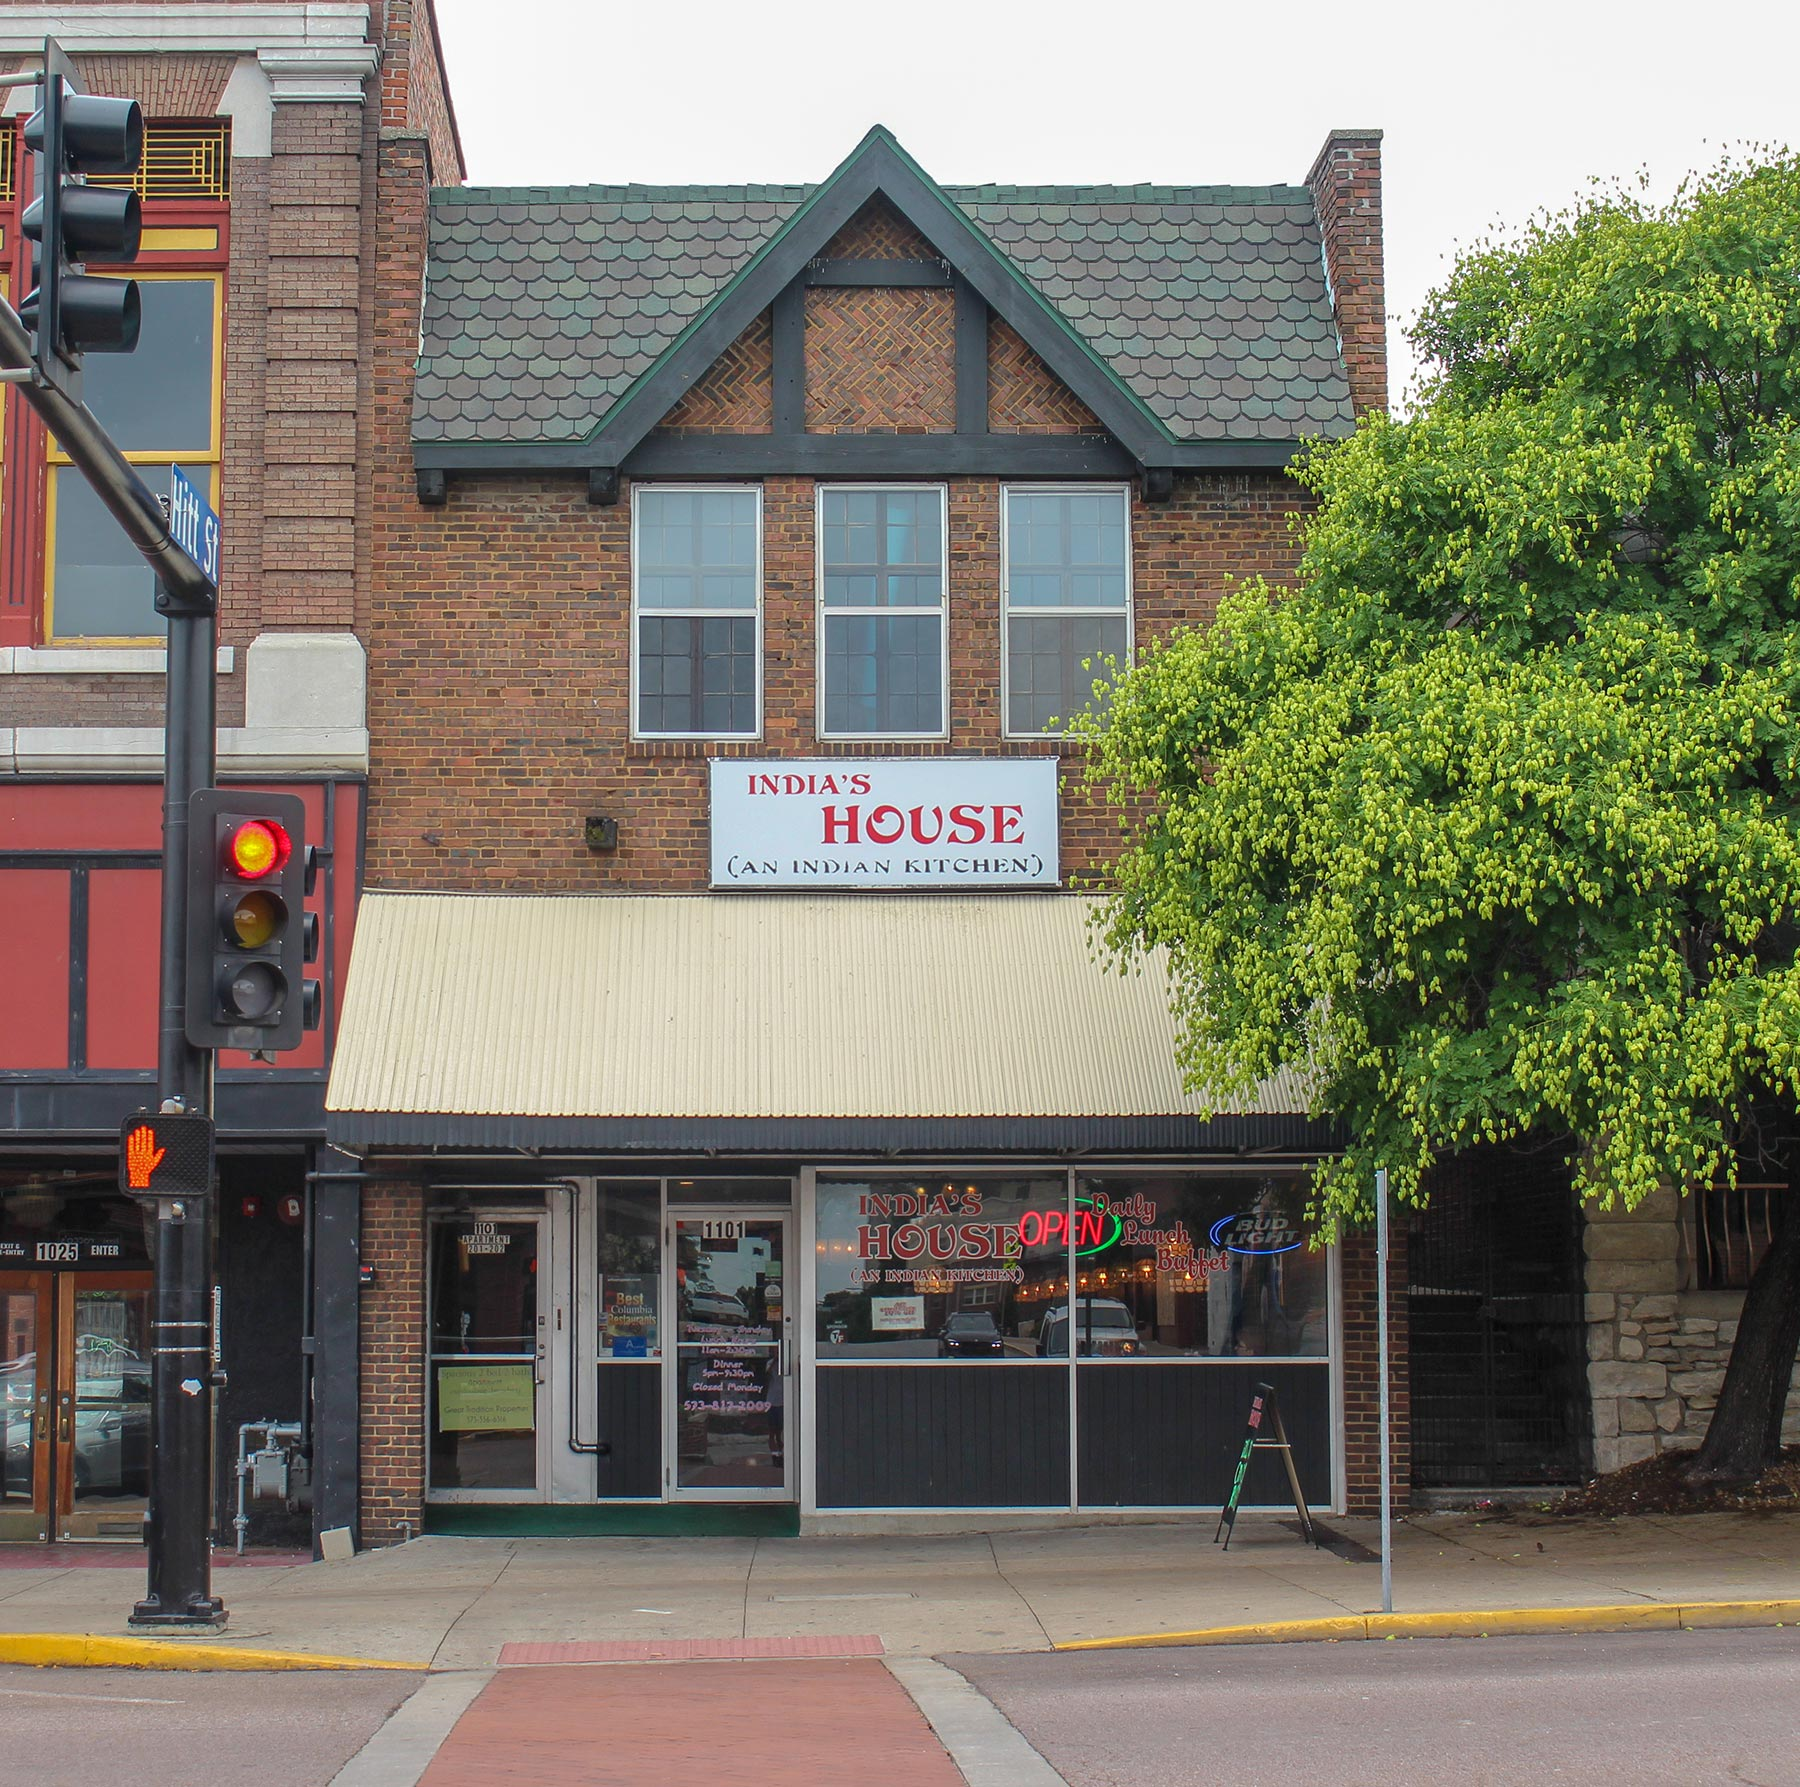 India's House Indian restaurant in downtown Columbia, MO